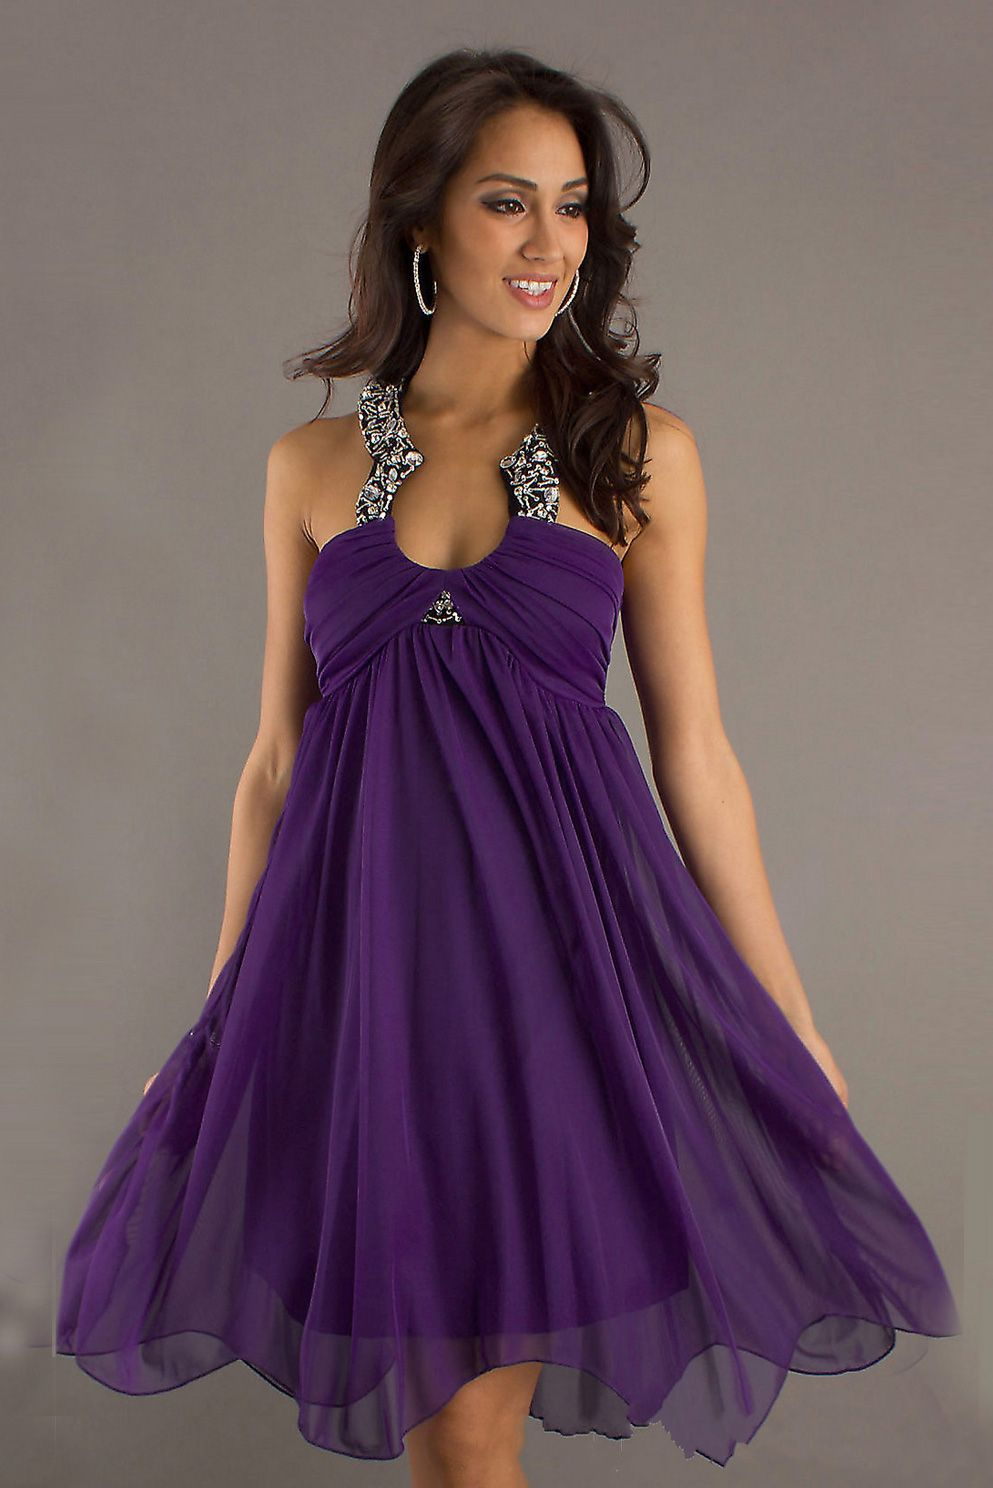 love the color | Fashion for Spring/Summer | Pinterest | Purple ...